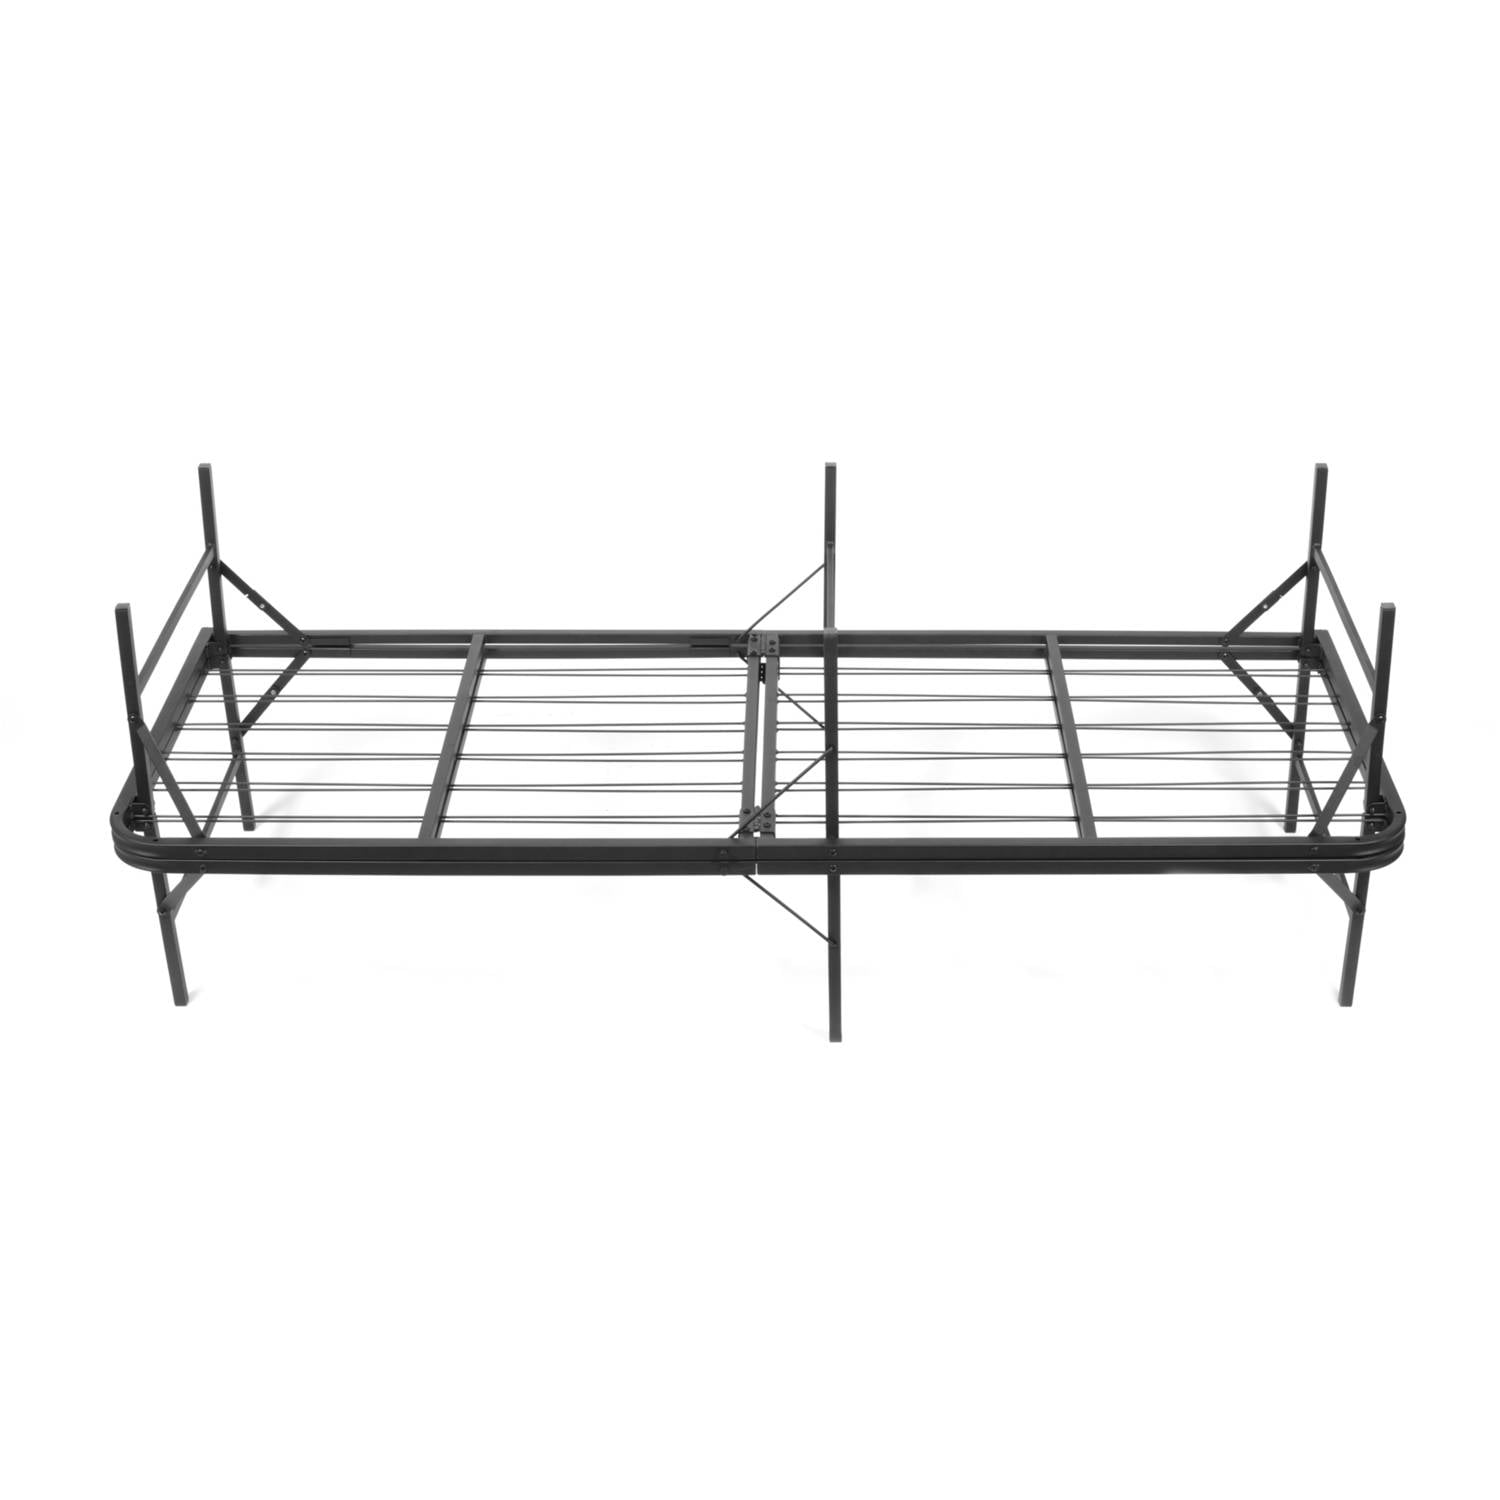 Pragma Simple Base Bi-Fold Bed Frame, Multiple Sizes - Walmart.com